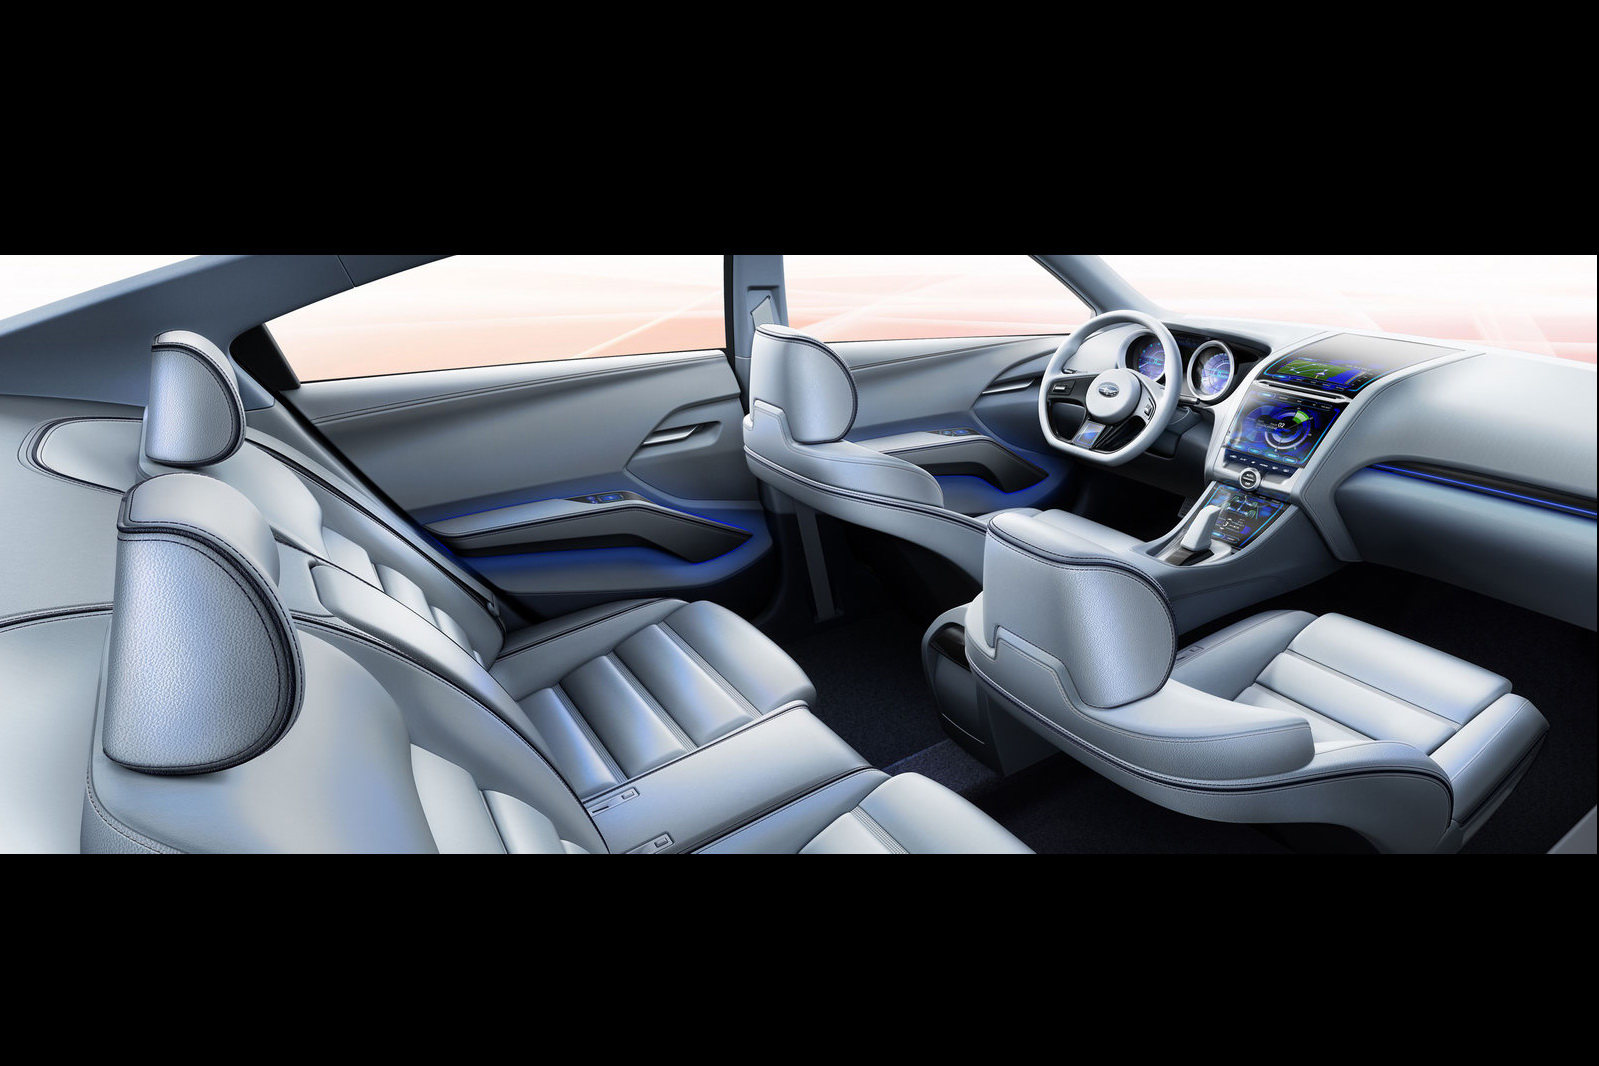 2010 new subaru impreza concept car autos car for Car inner decoration